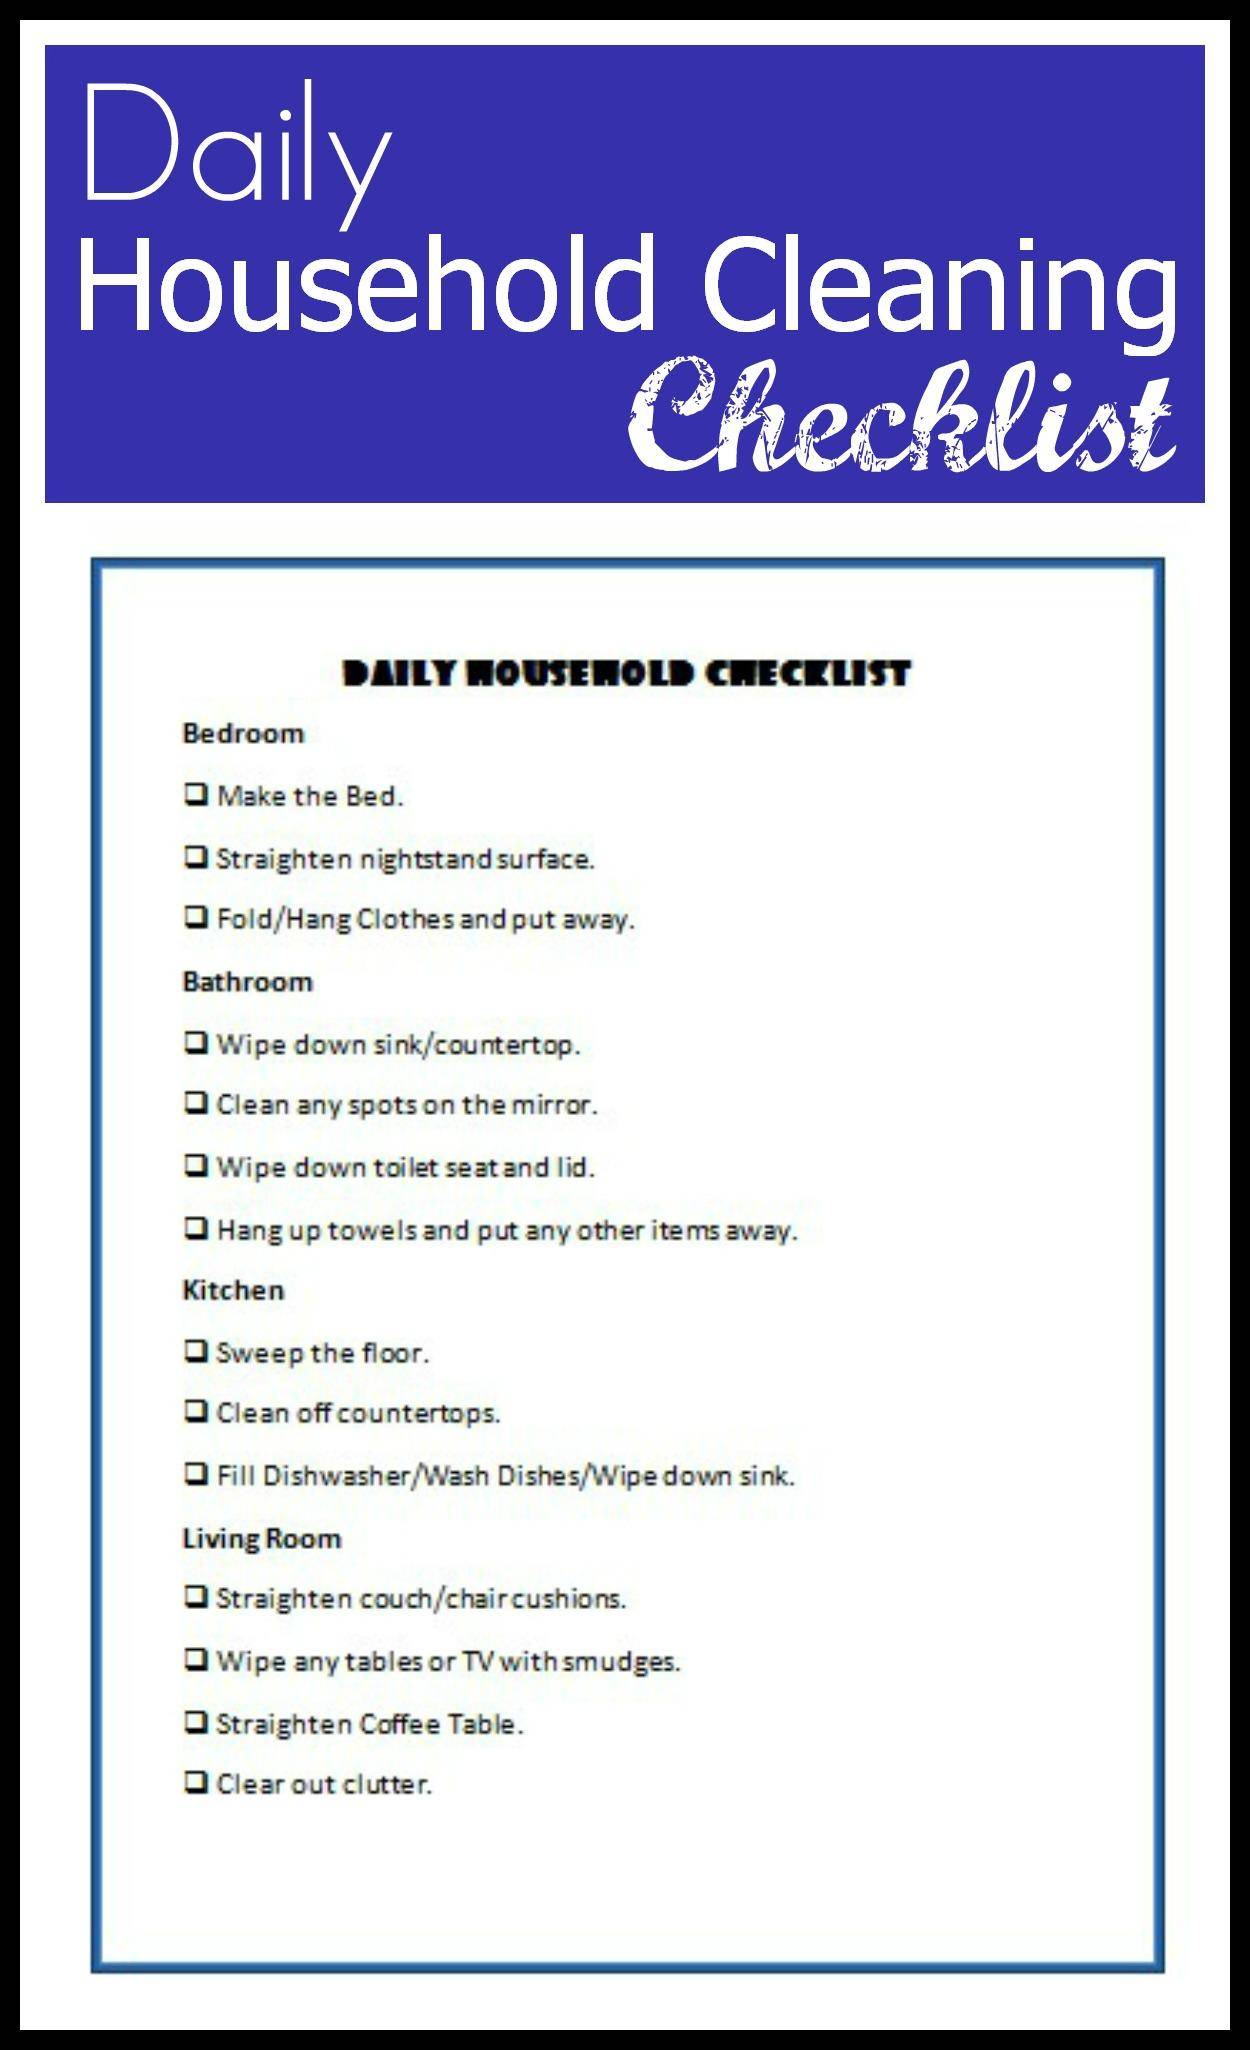 Daily Household Cleaning Checklist